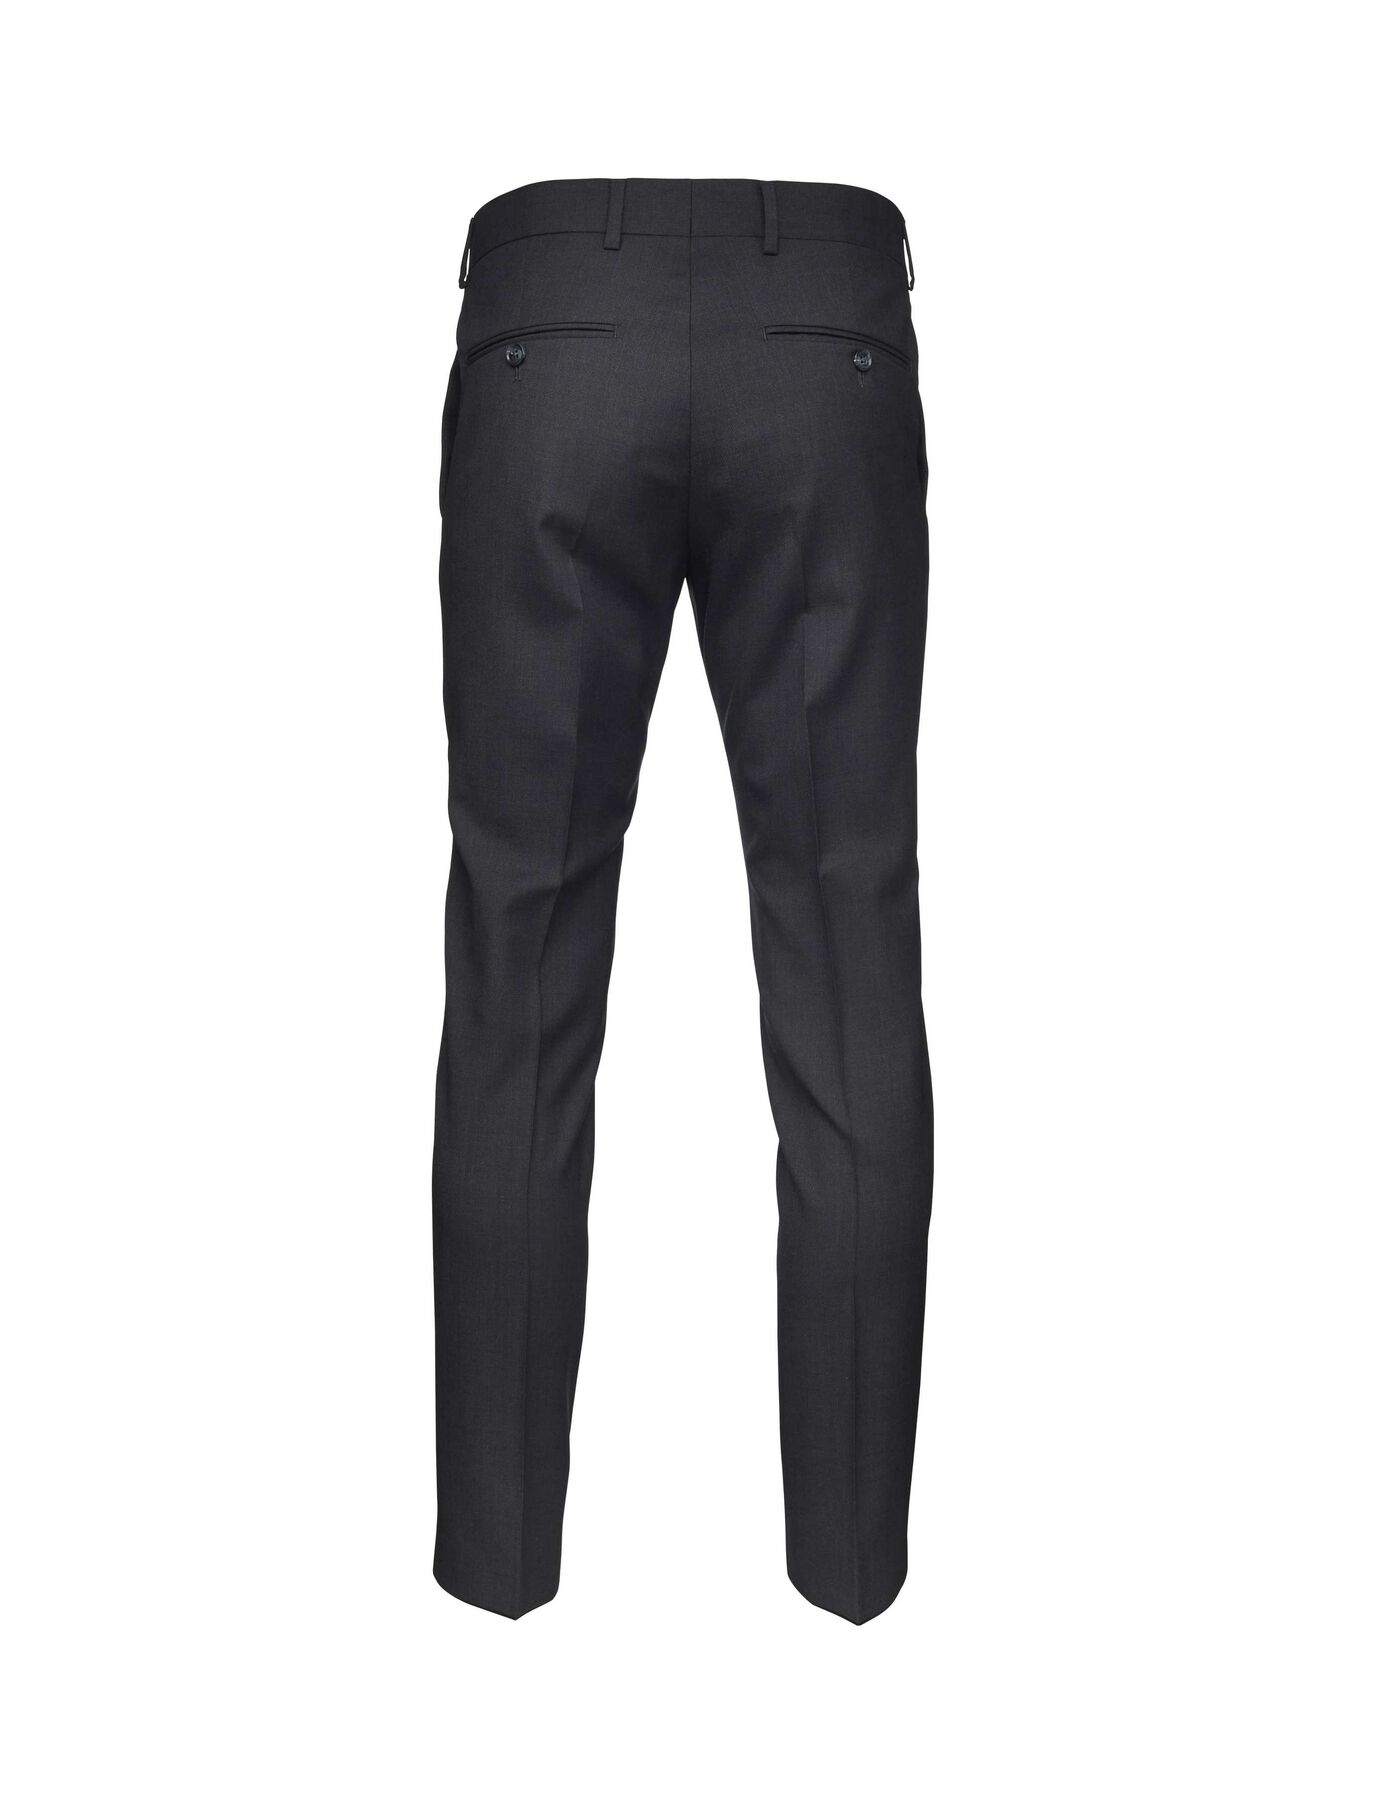 Gordon trousers